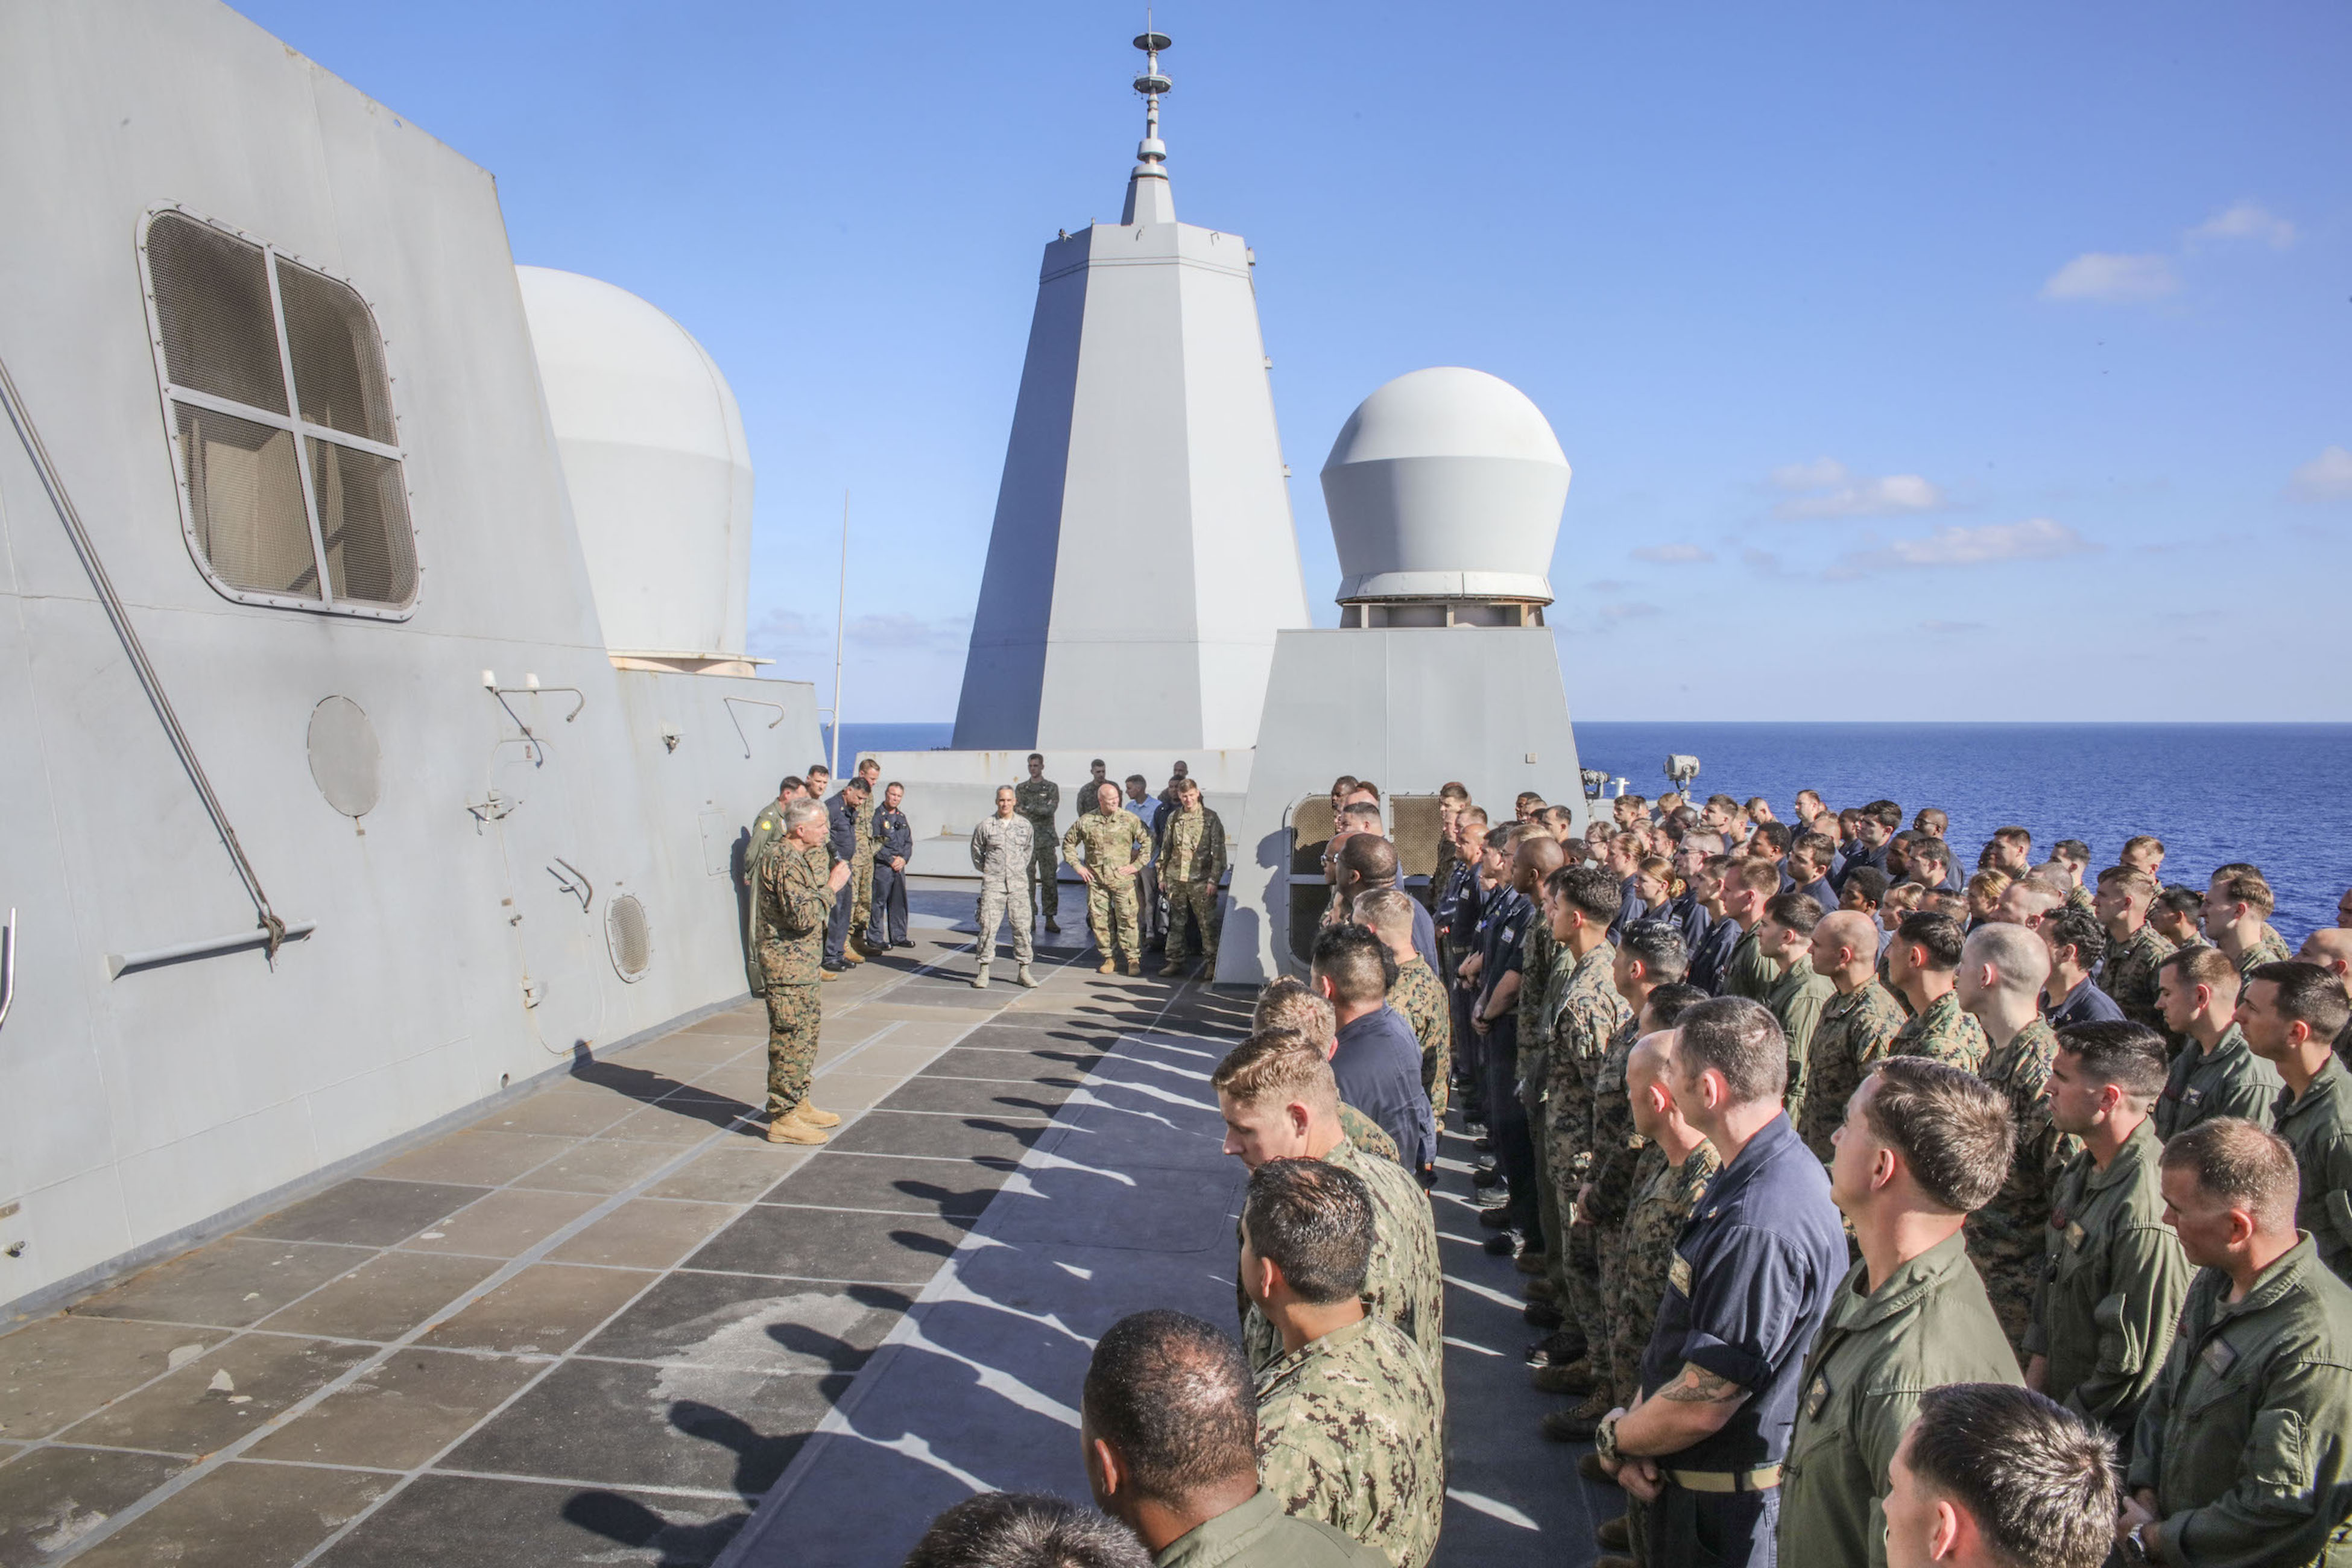 MEDITERRANEAN SEA (Sept. 6, 2017) U.S. Marine Gen. Thomas D. Waldhauser, commander, U.S. Africa Command, addresses officers and senior leaders aboard the San Antonio-class amphibious transport dock ship USS Mesa Verde (LPD 19) during a visit Sept. 6, 2017. The ship is deployed with the Bataan Amphibious Ready Group and 24th Marine Expeditionary Unit to support maritime security operations and theater security cooperation efforts in the U.S. 6th Fleet area of operations. (U.S. Navy photo by Mass Communication Specialist 2nd Class Brent Pyfrom/Released)